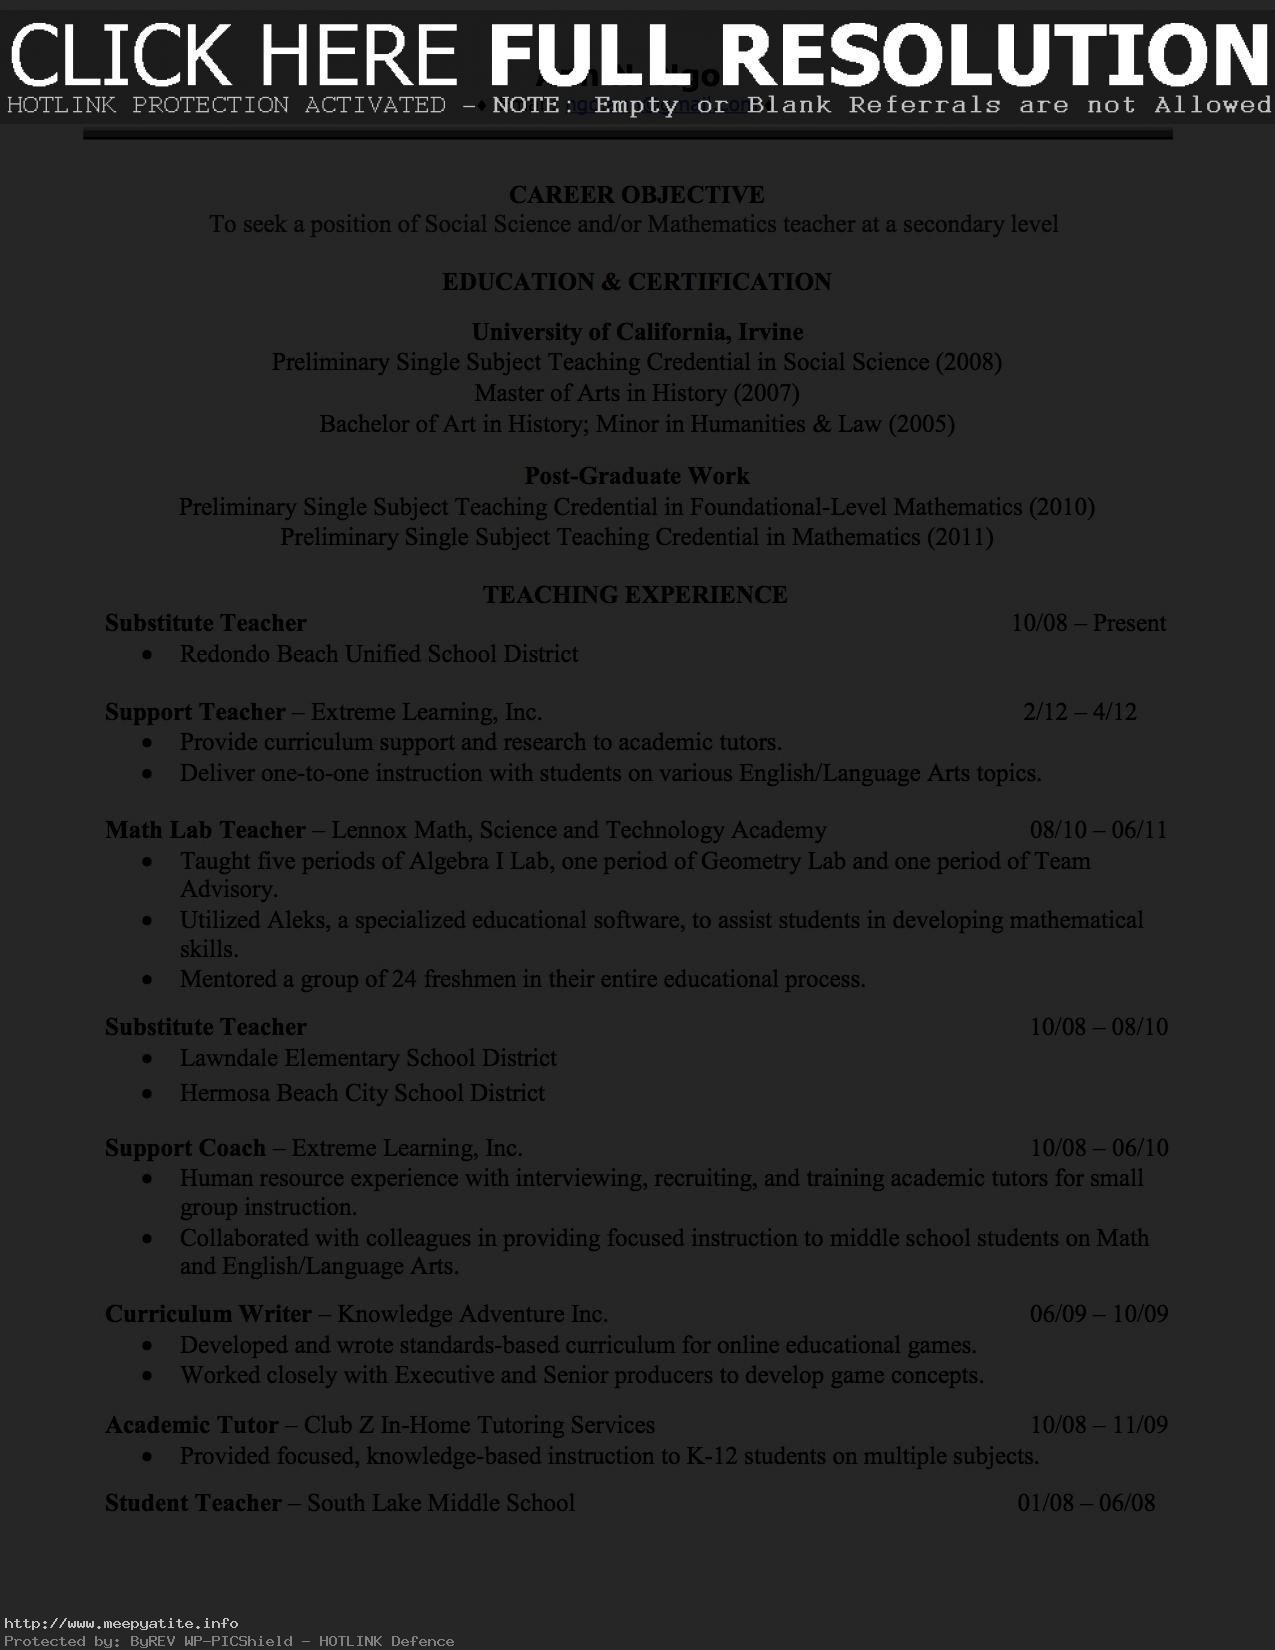 Inroads Resume Template - Resume Template Resume Template Tips forbes Ideas Samples